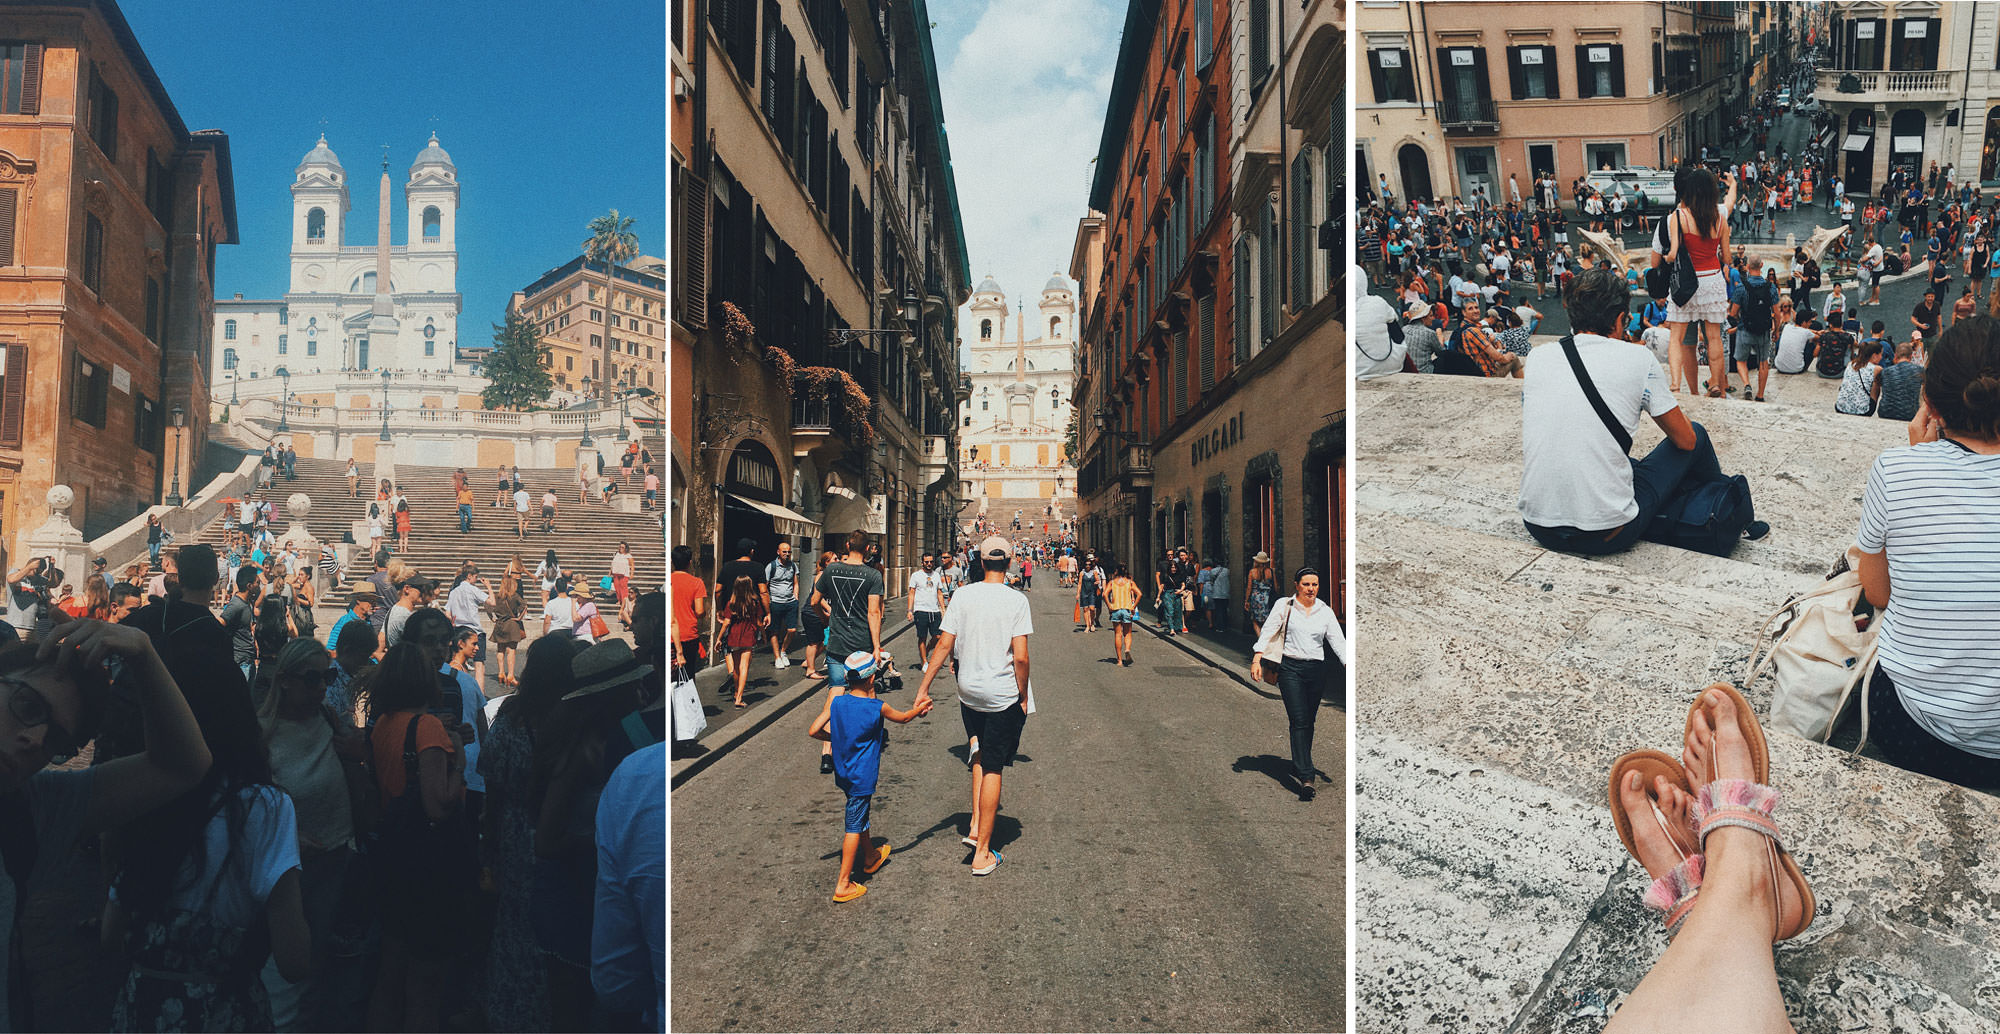 pelamarela, blogger, lifestyle, personal, rome, travel, colosseum, spanish steps, piazza navona, vaticano, italy, summer 2018, city trip, solo travelling